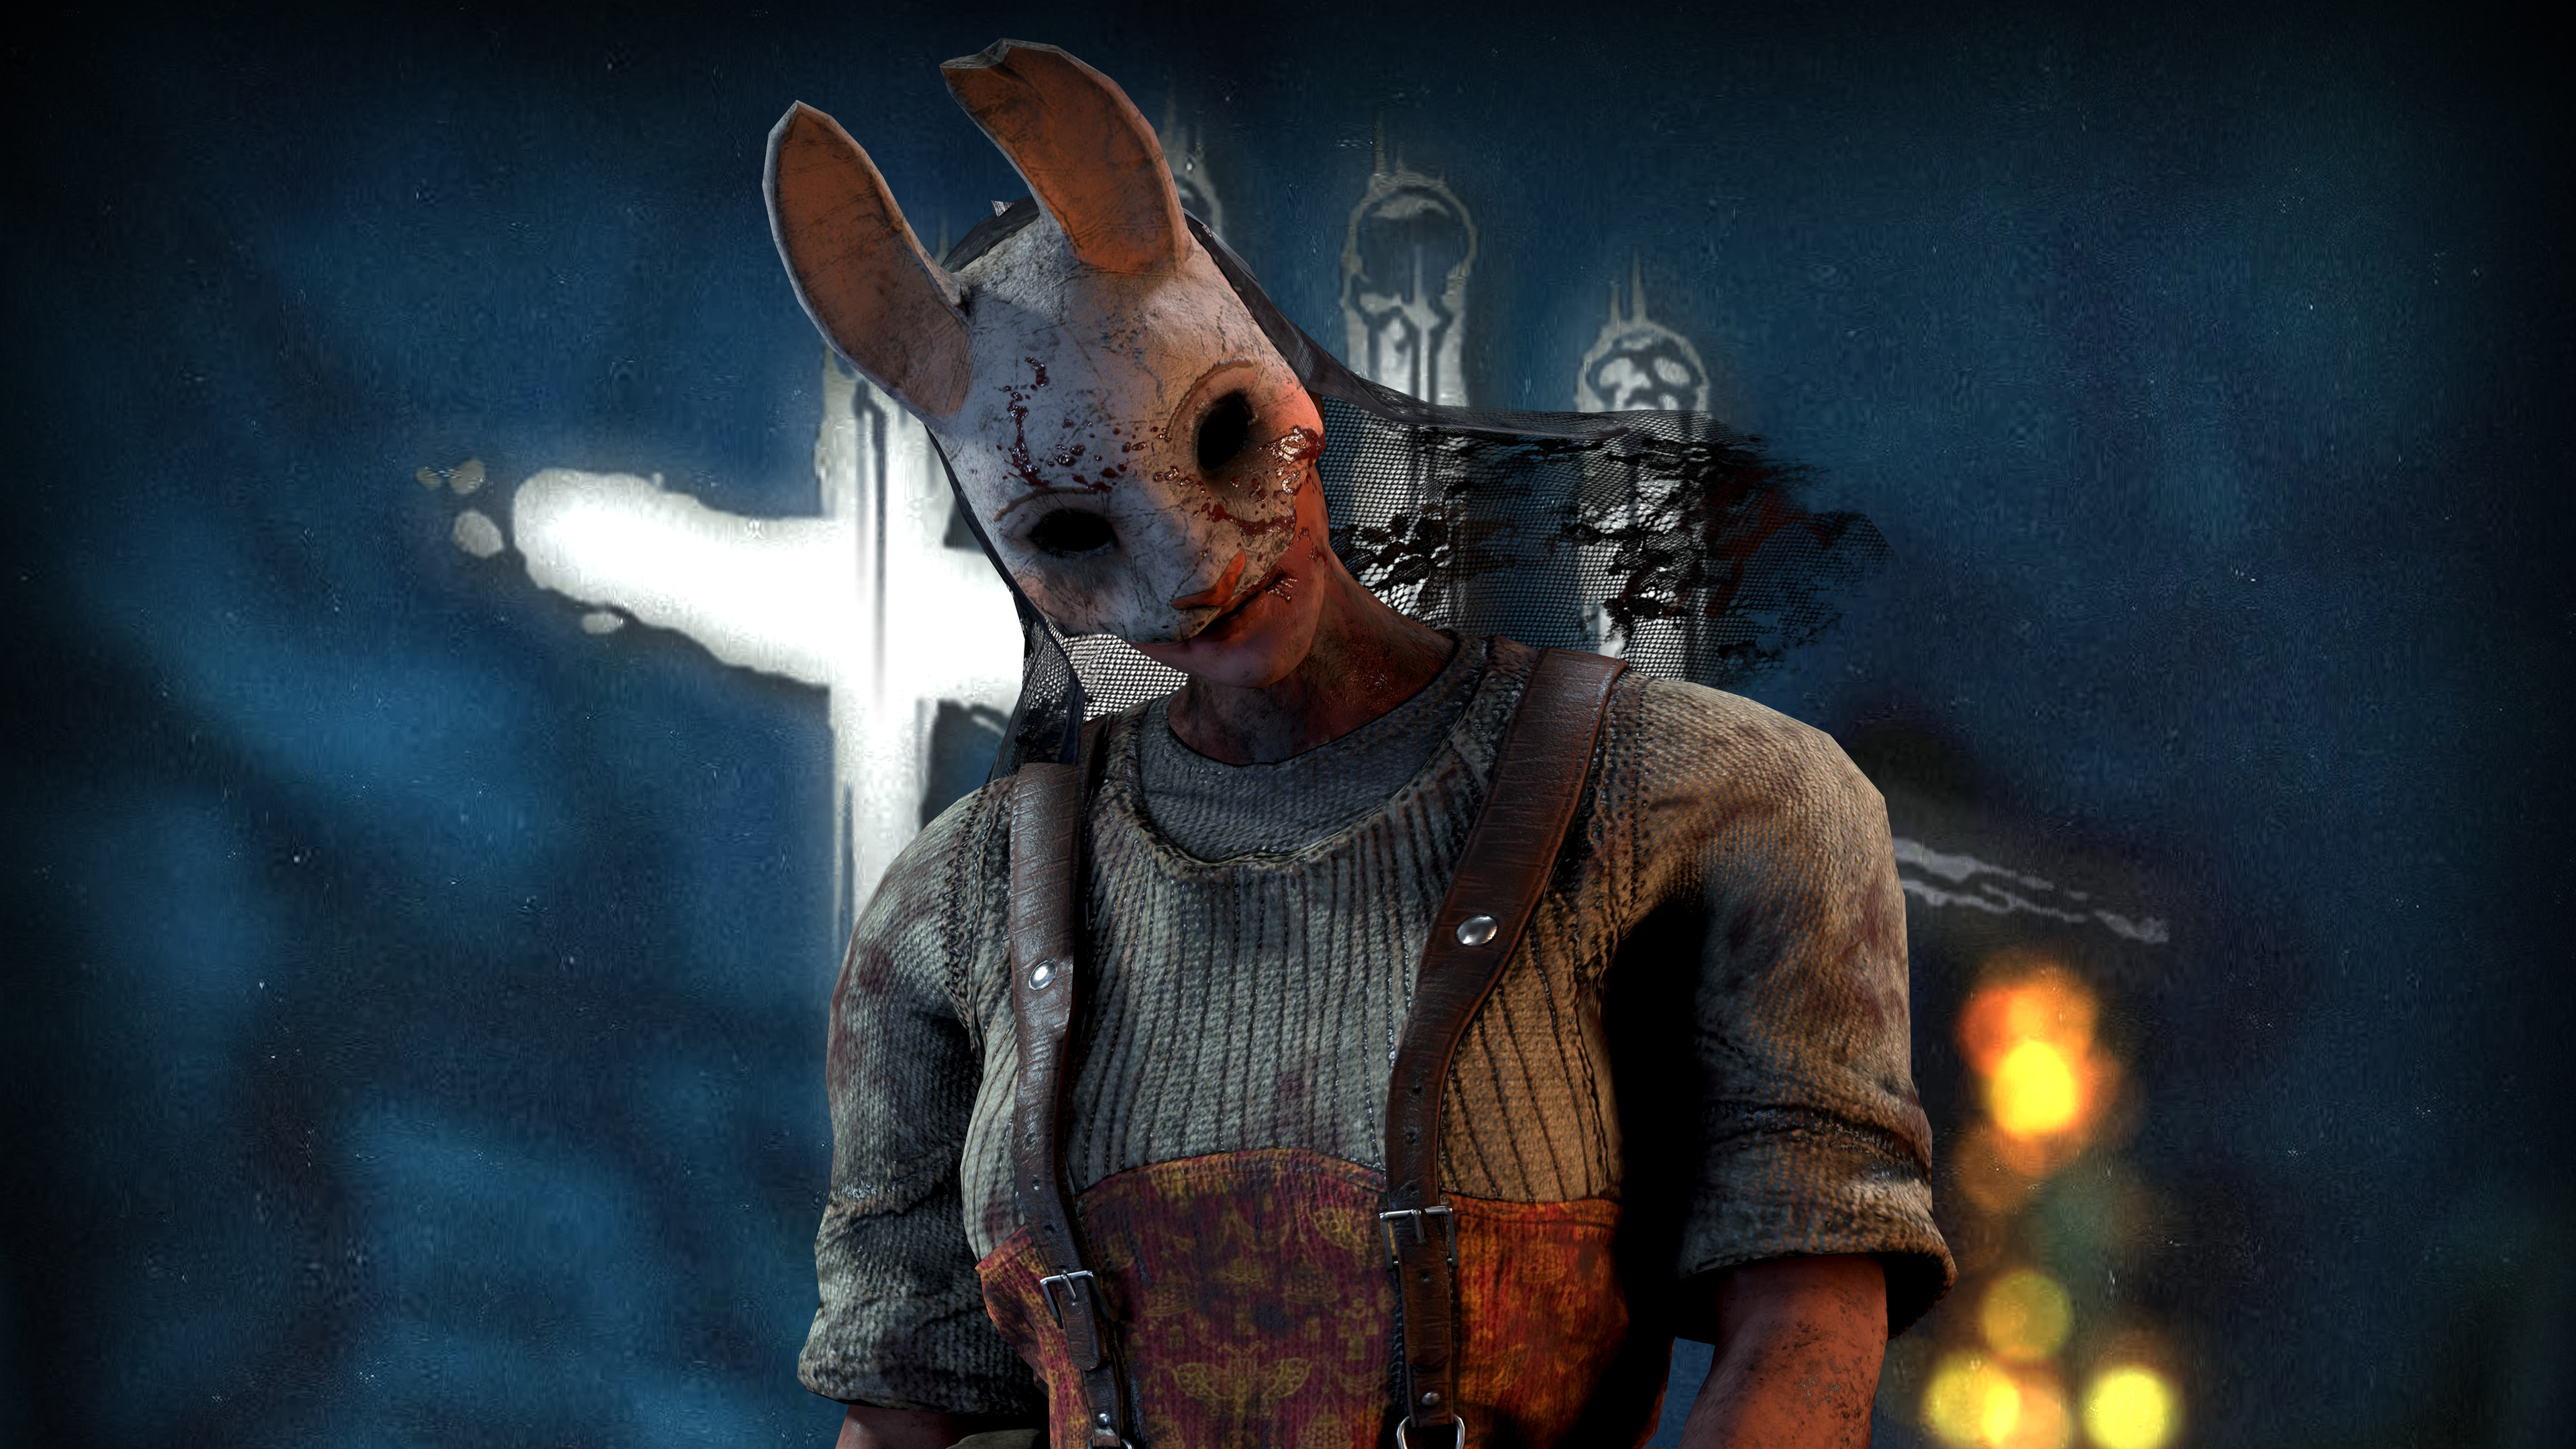 dead by daylight huntress 4k 1553074675 - Dead By Daylight Huntress 4k - hd-wallpapers, games wallpapers, dead by daylight wallpapers, 4k-wallpapers, 2019 games wallpapers